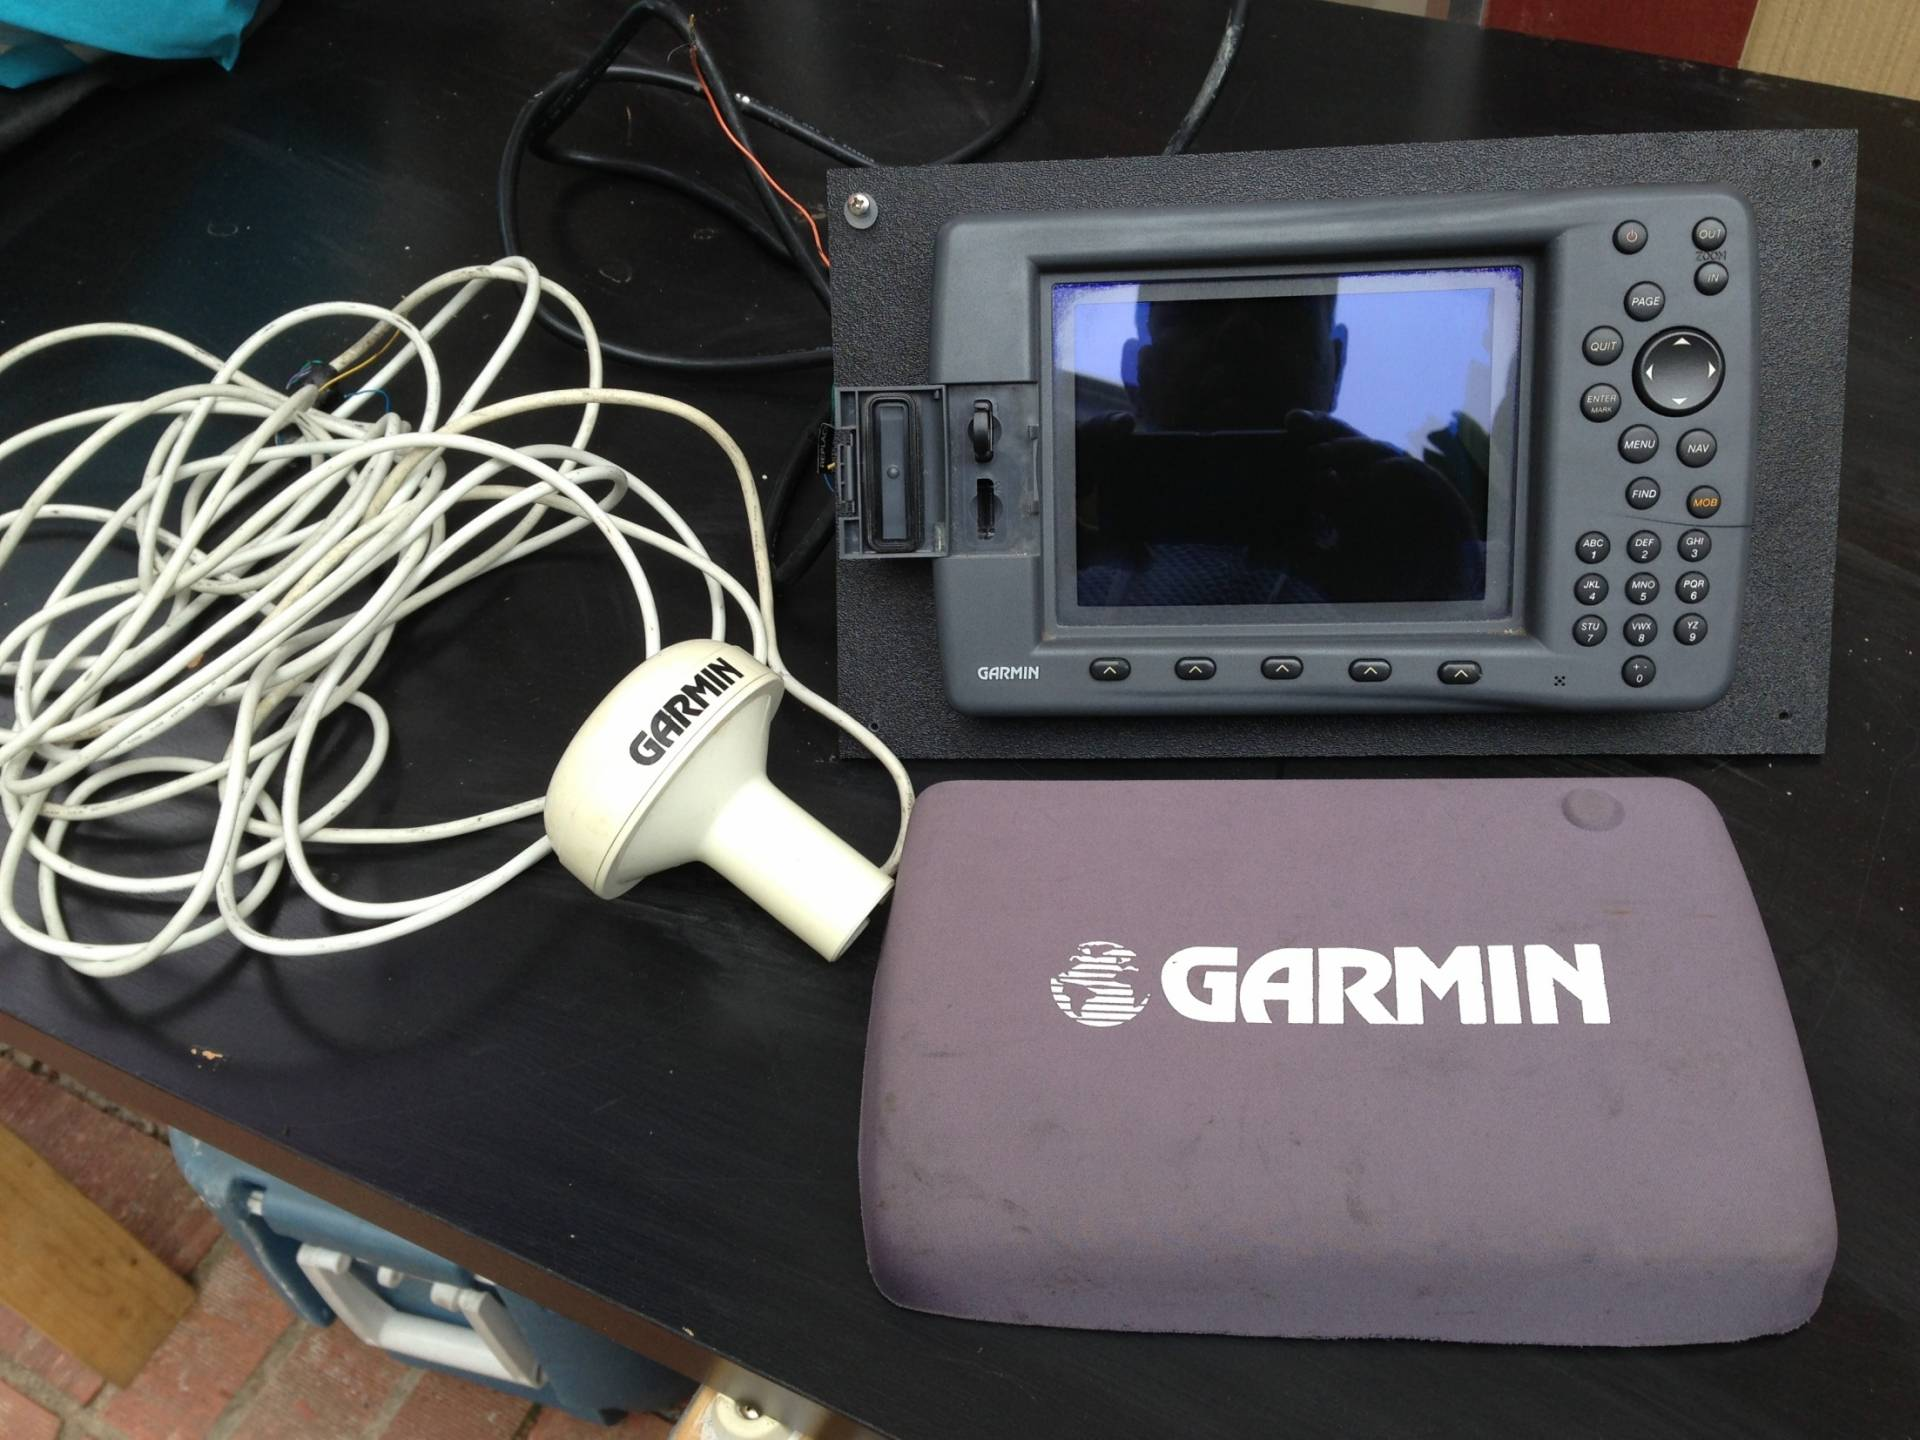 1013623_3058409605825d07c7dbf6079dfd409e for sale garmin gps 2006c color plotter, chart card and gps 17 Garmin GPS Wire Layout at creativeand.co